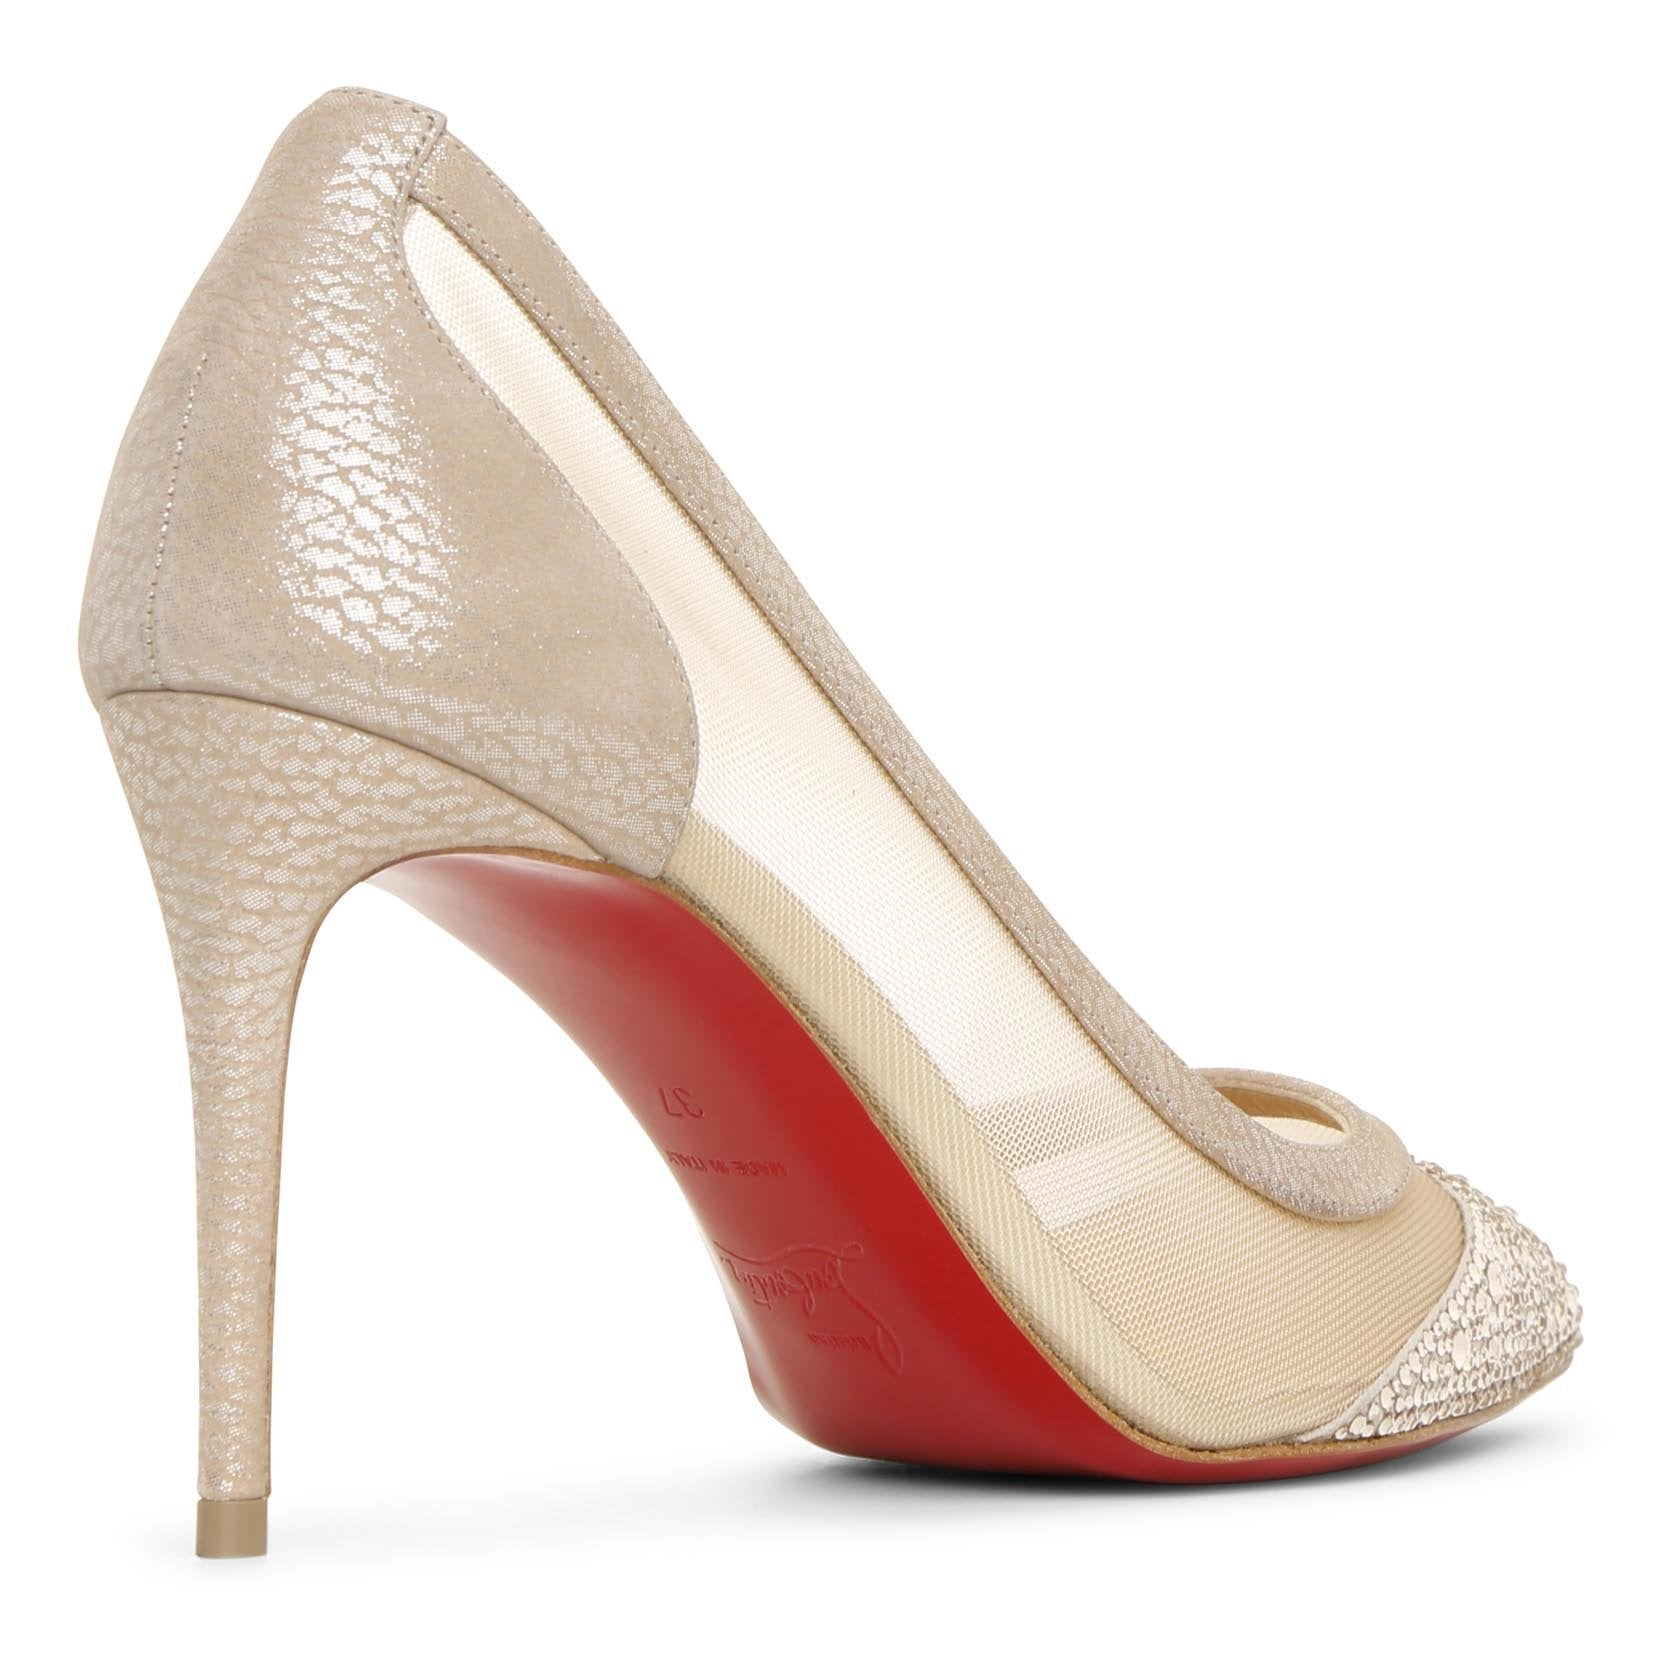 Galativi strass 85 nude pumps